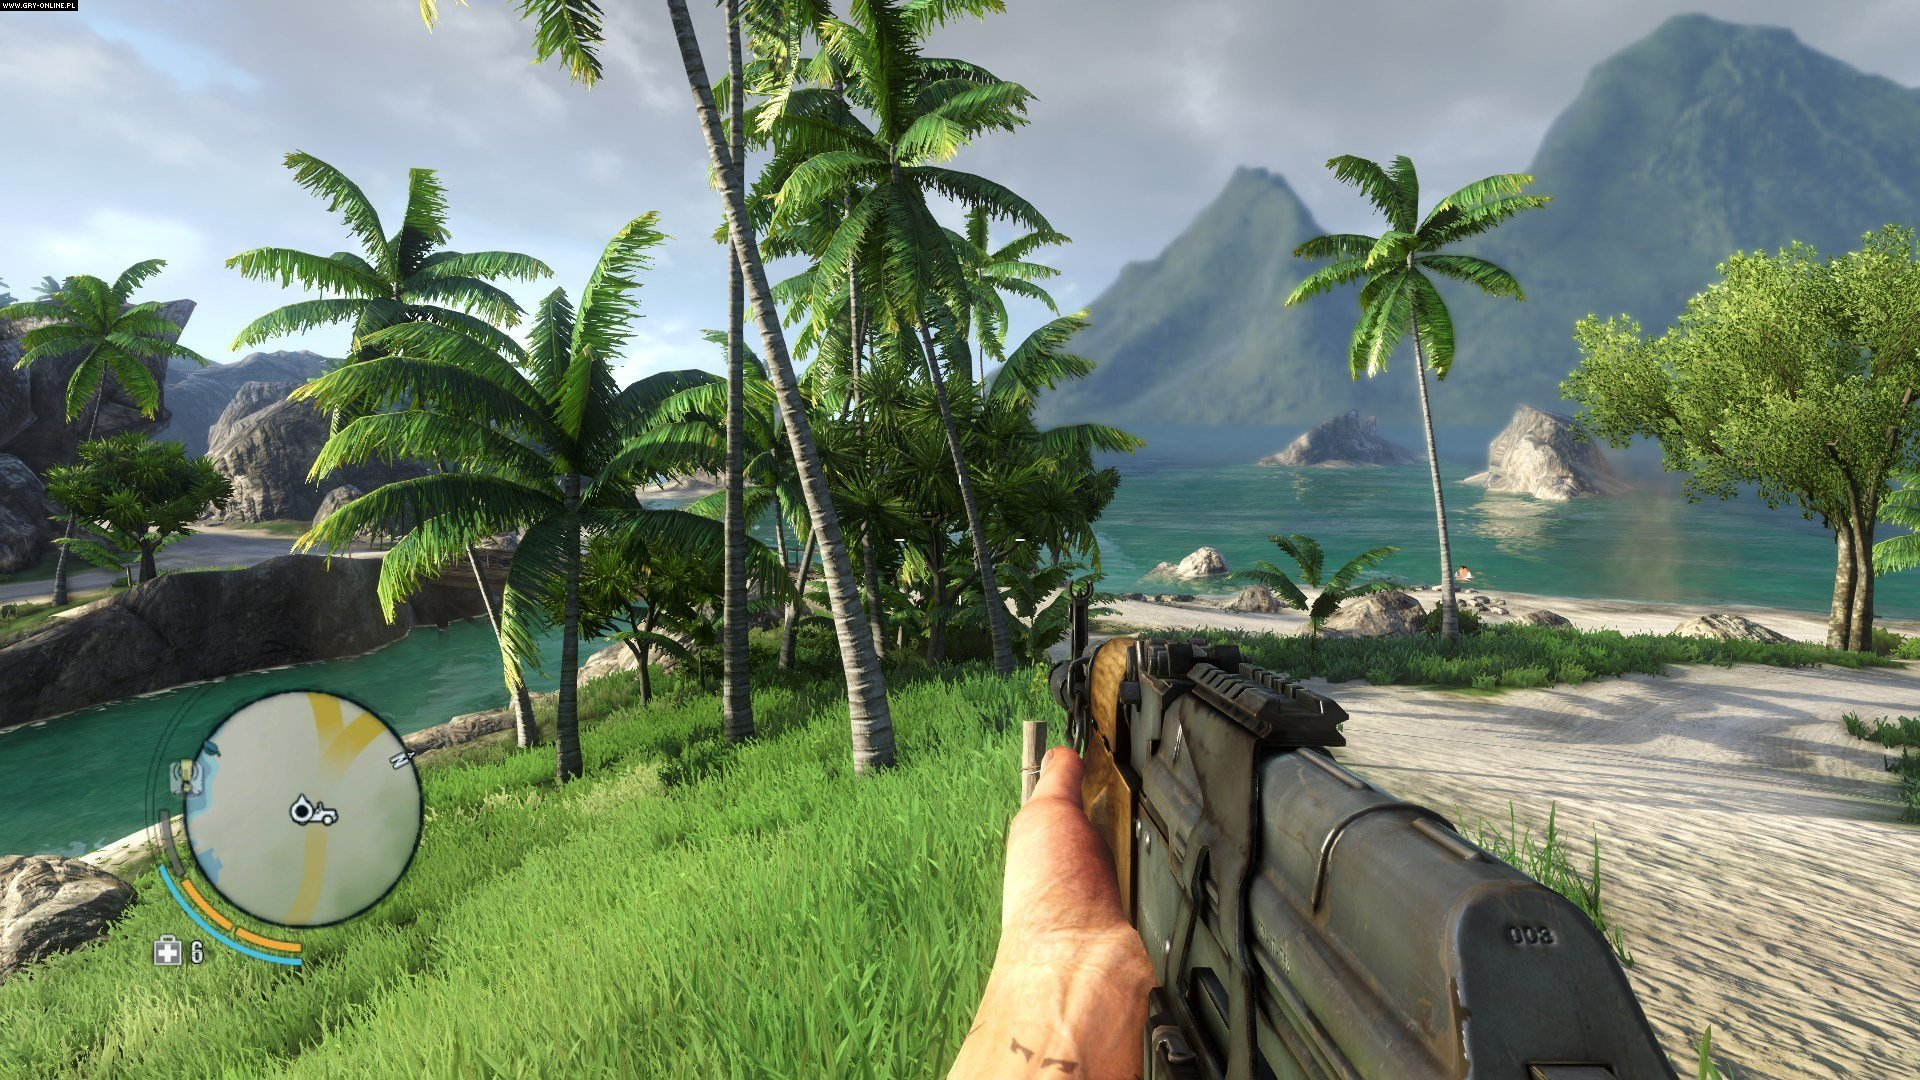 Far Cry 3, one of this week's gaming discounts